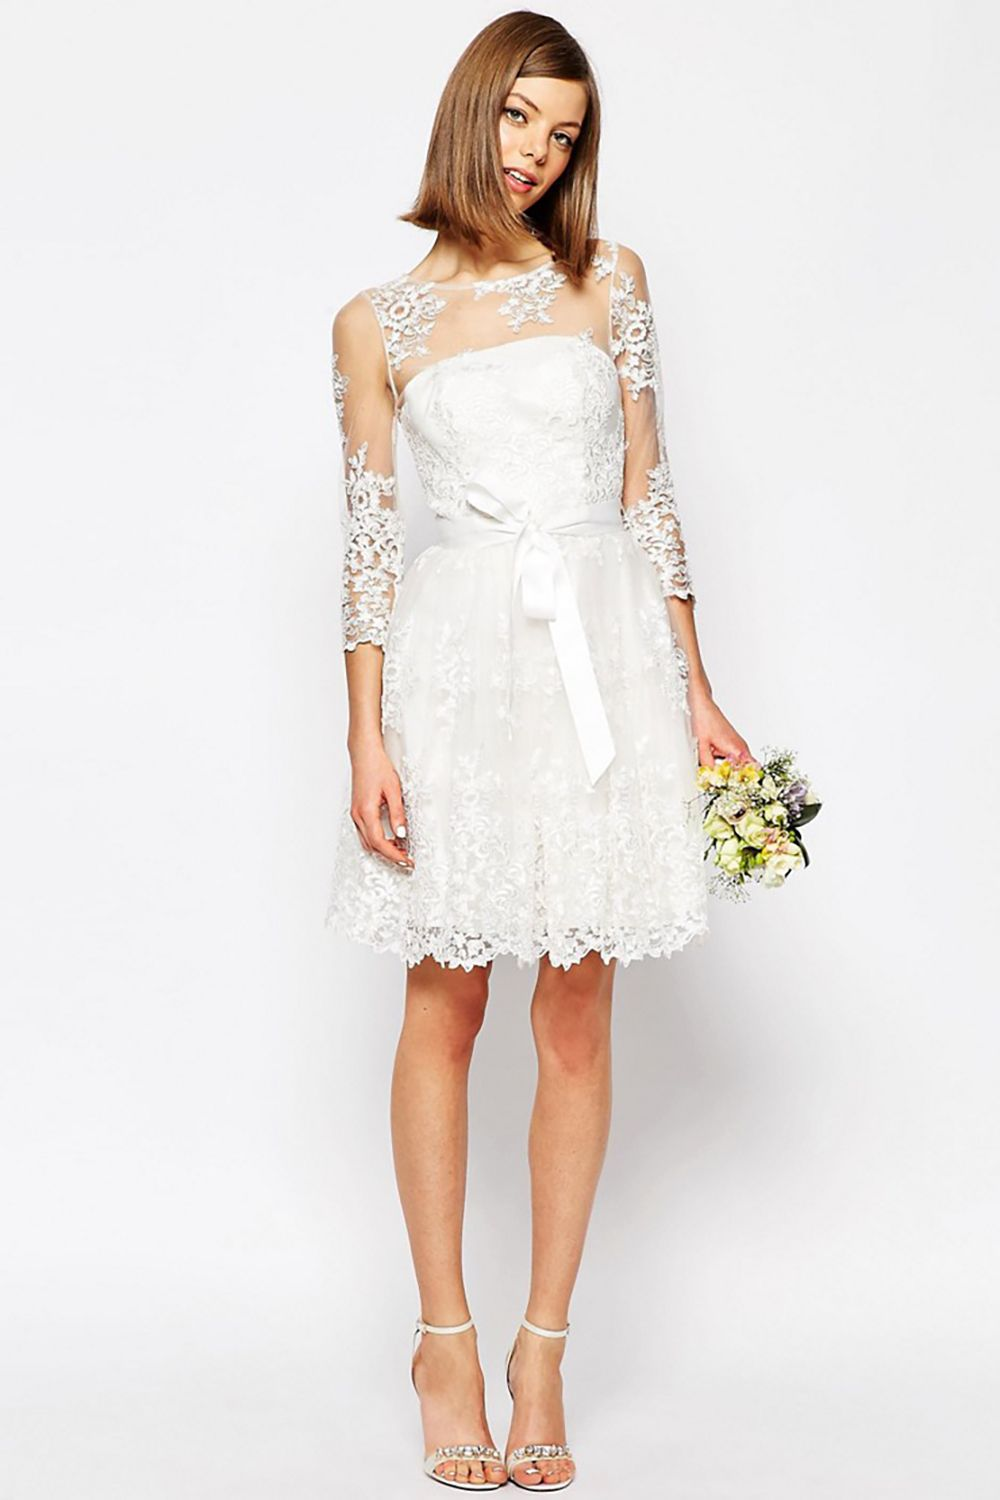 """<p>This short, lacy number is absolutely perfect for a garden venue or a jaunt to city hall.</p><p>Long Sleeve Lace Mini Dress, $258; <a href=""""http://www.asos.com/asos/asos-bridal-long-sleeve-lace-mini-dress/prod/pgeproduct.aspx?iid=5997832 """" target=""""_blank"""">asos.com</a></p>"""